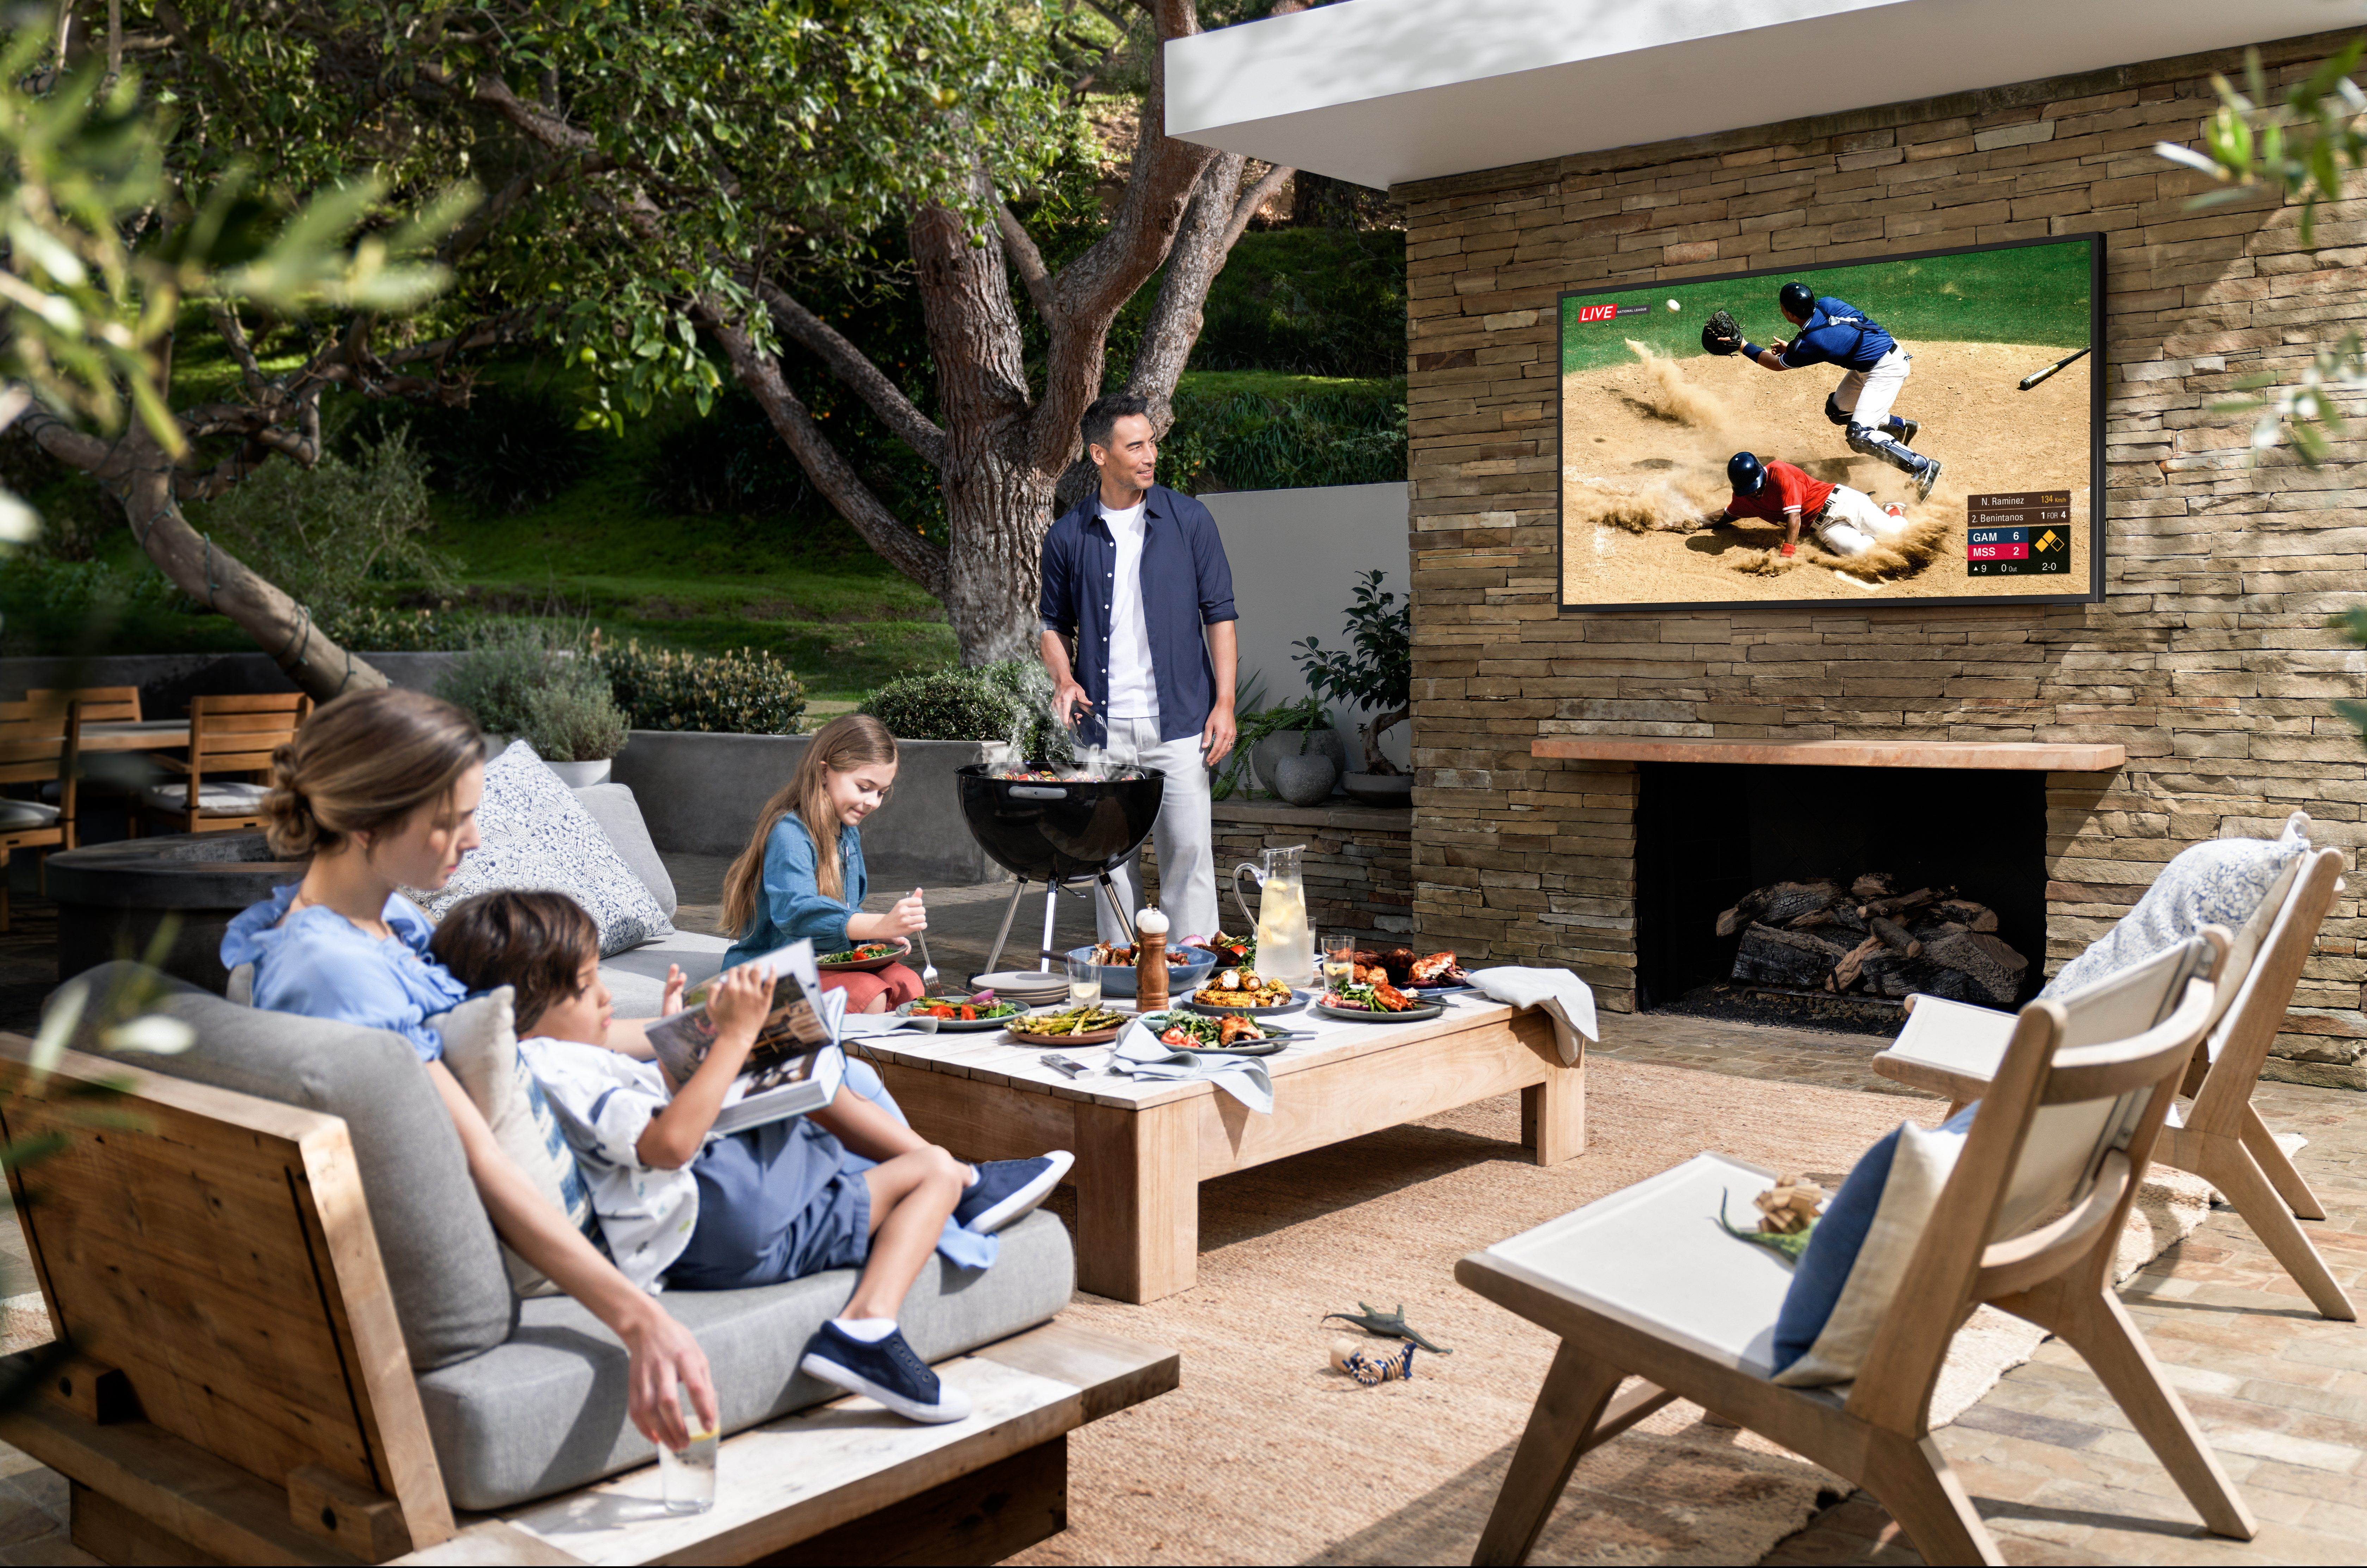 Enhance Your Backyard with an Outdoor TV Installation